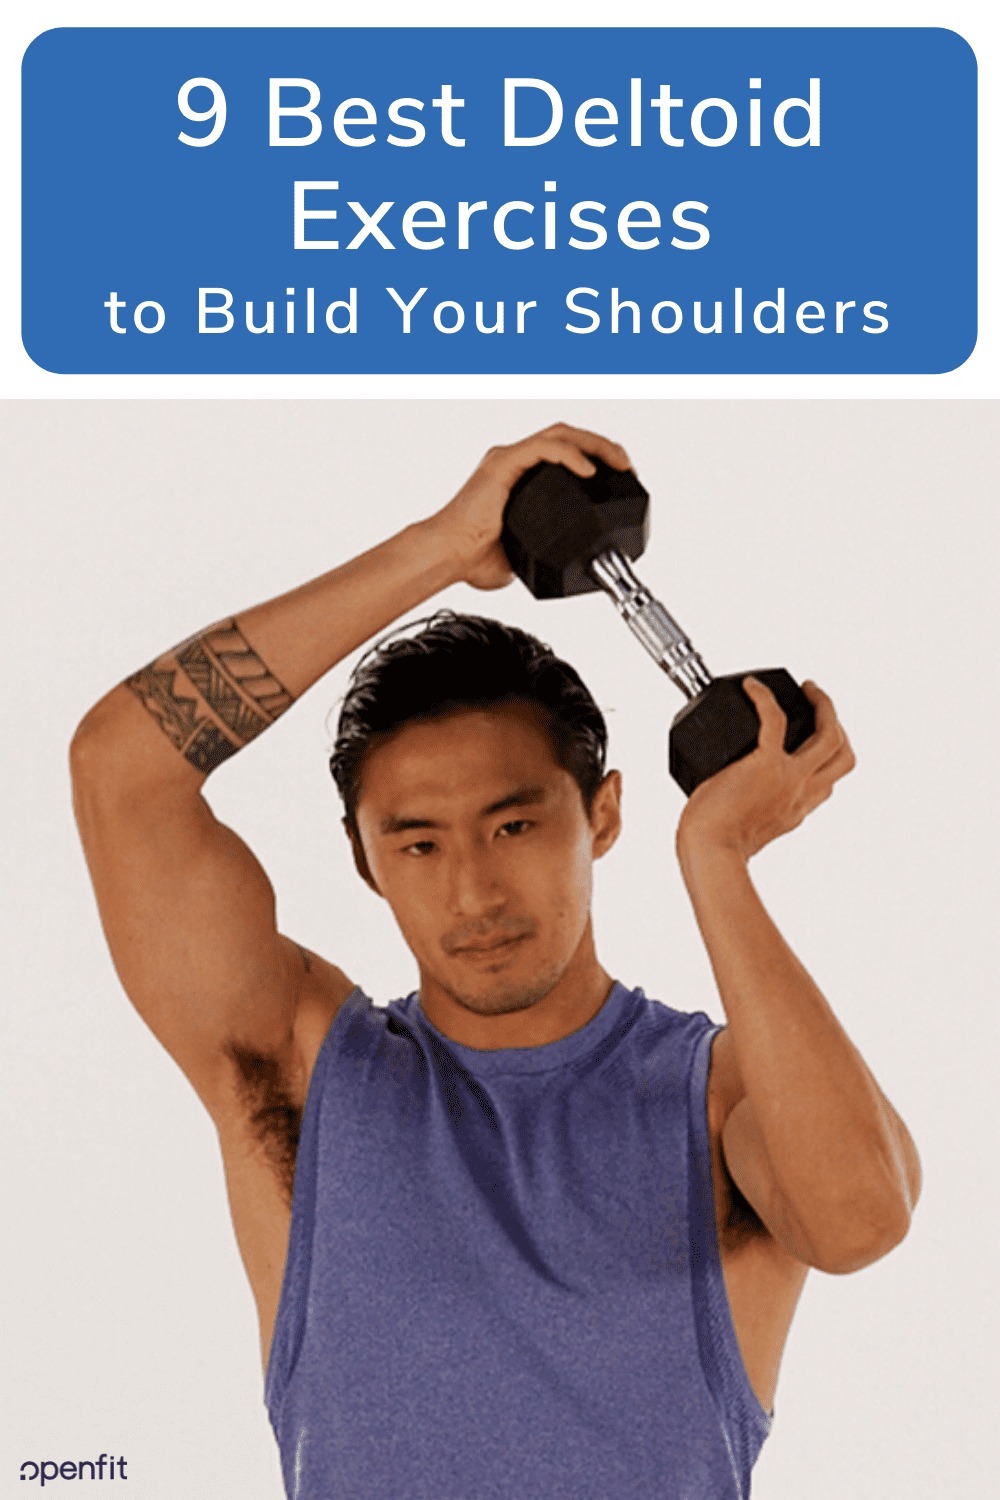 deltoid exercises pin